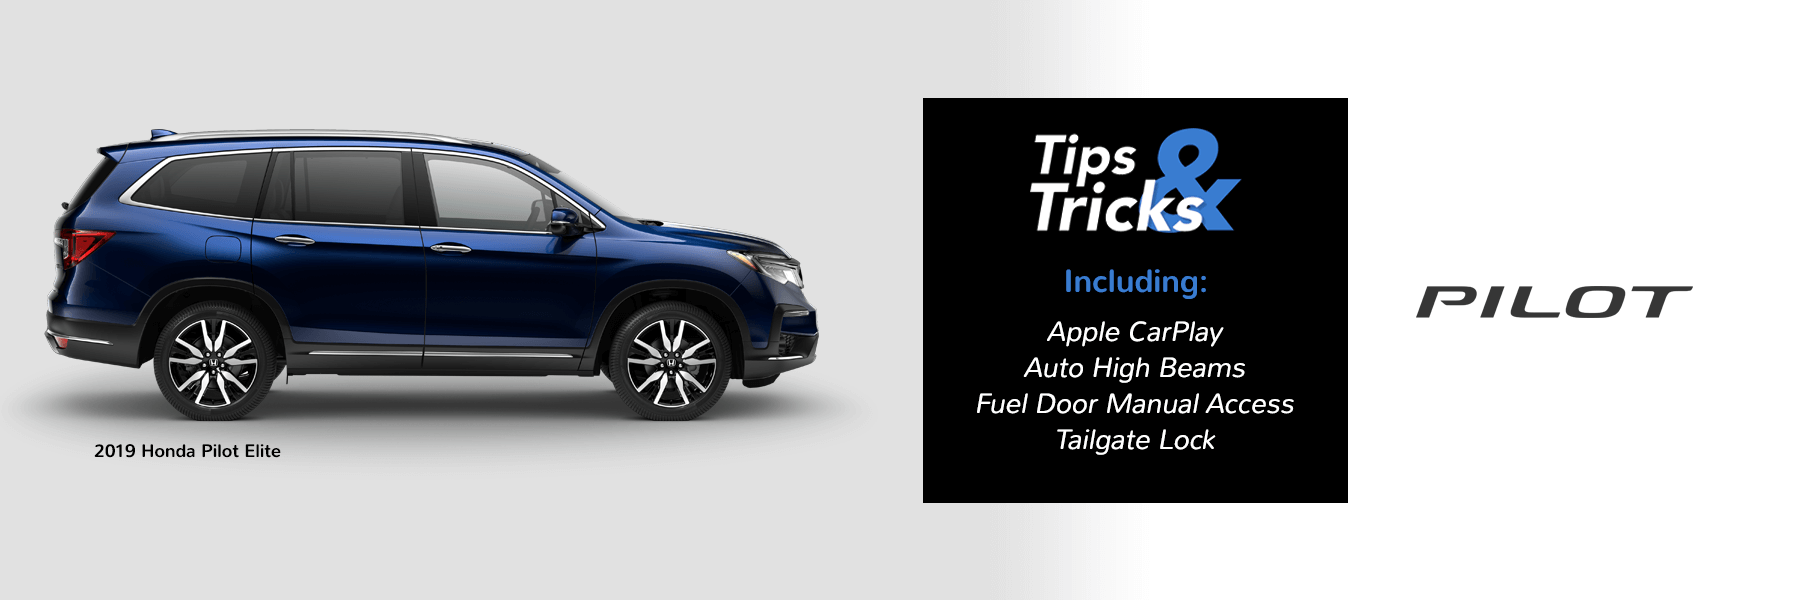 2019 Honda Pilot Tips and Tricks Slider